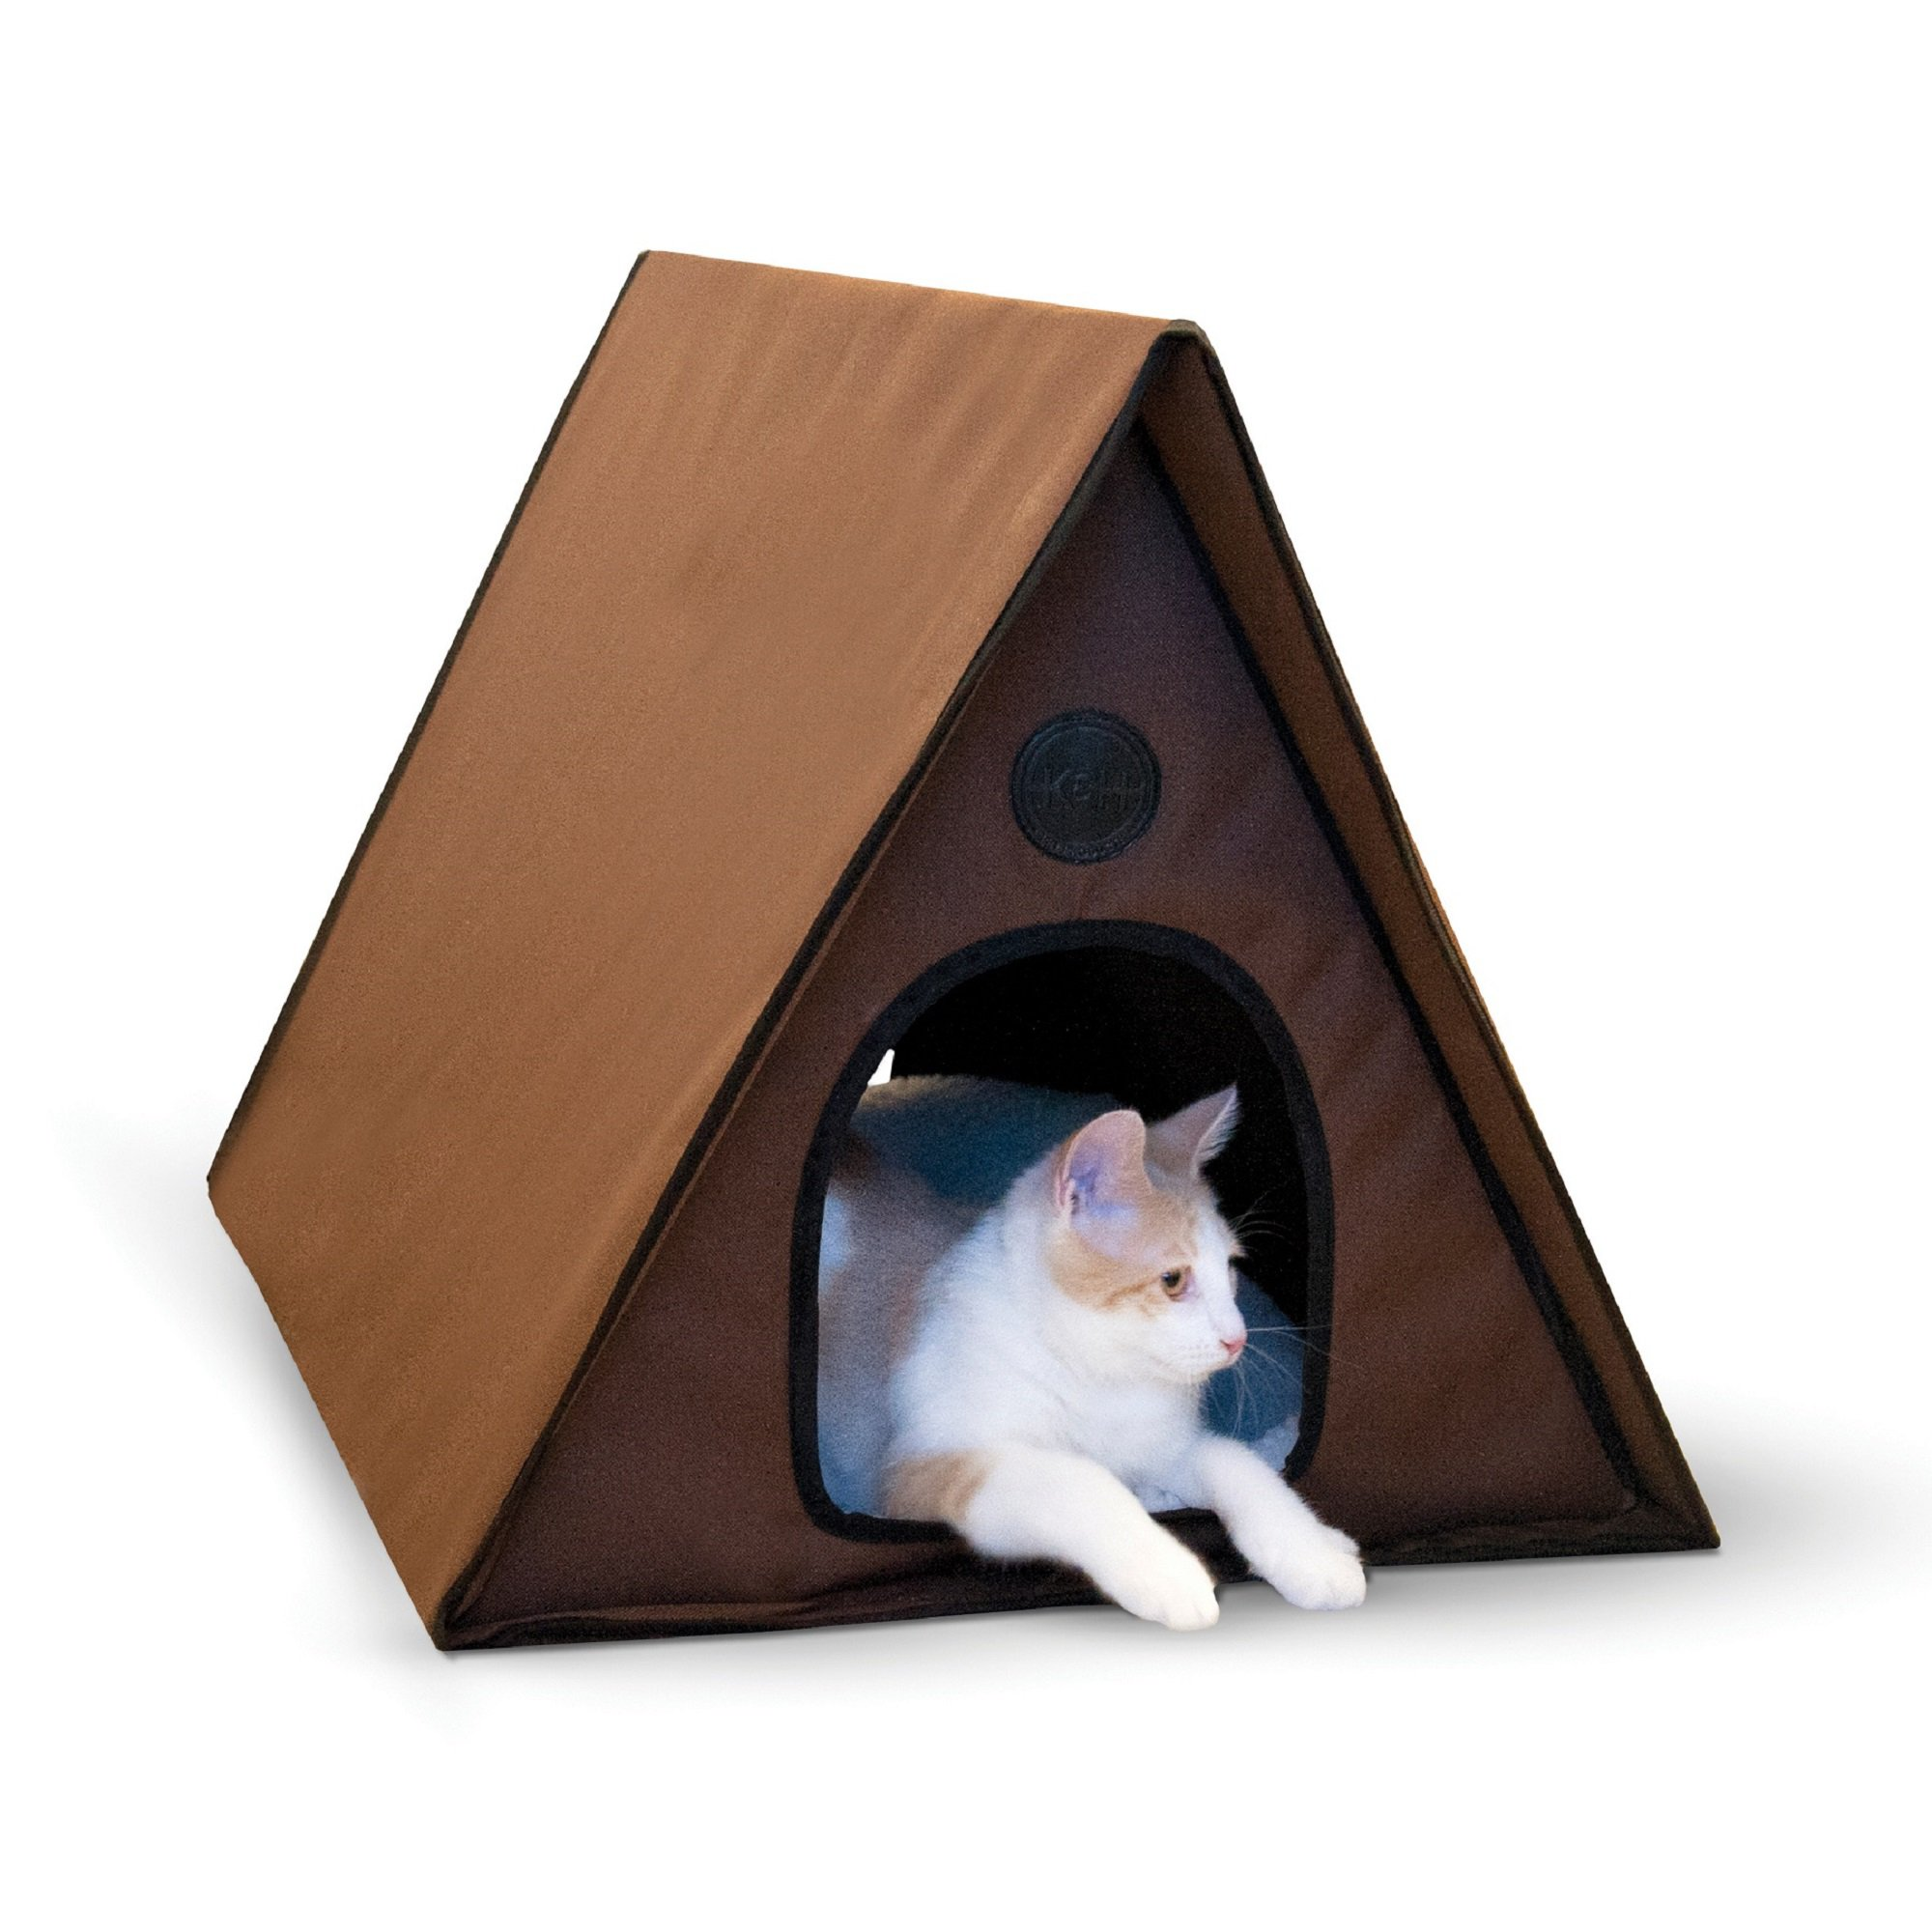 Petco Large Dog House